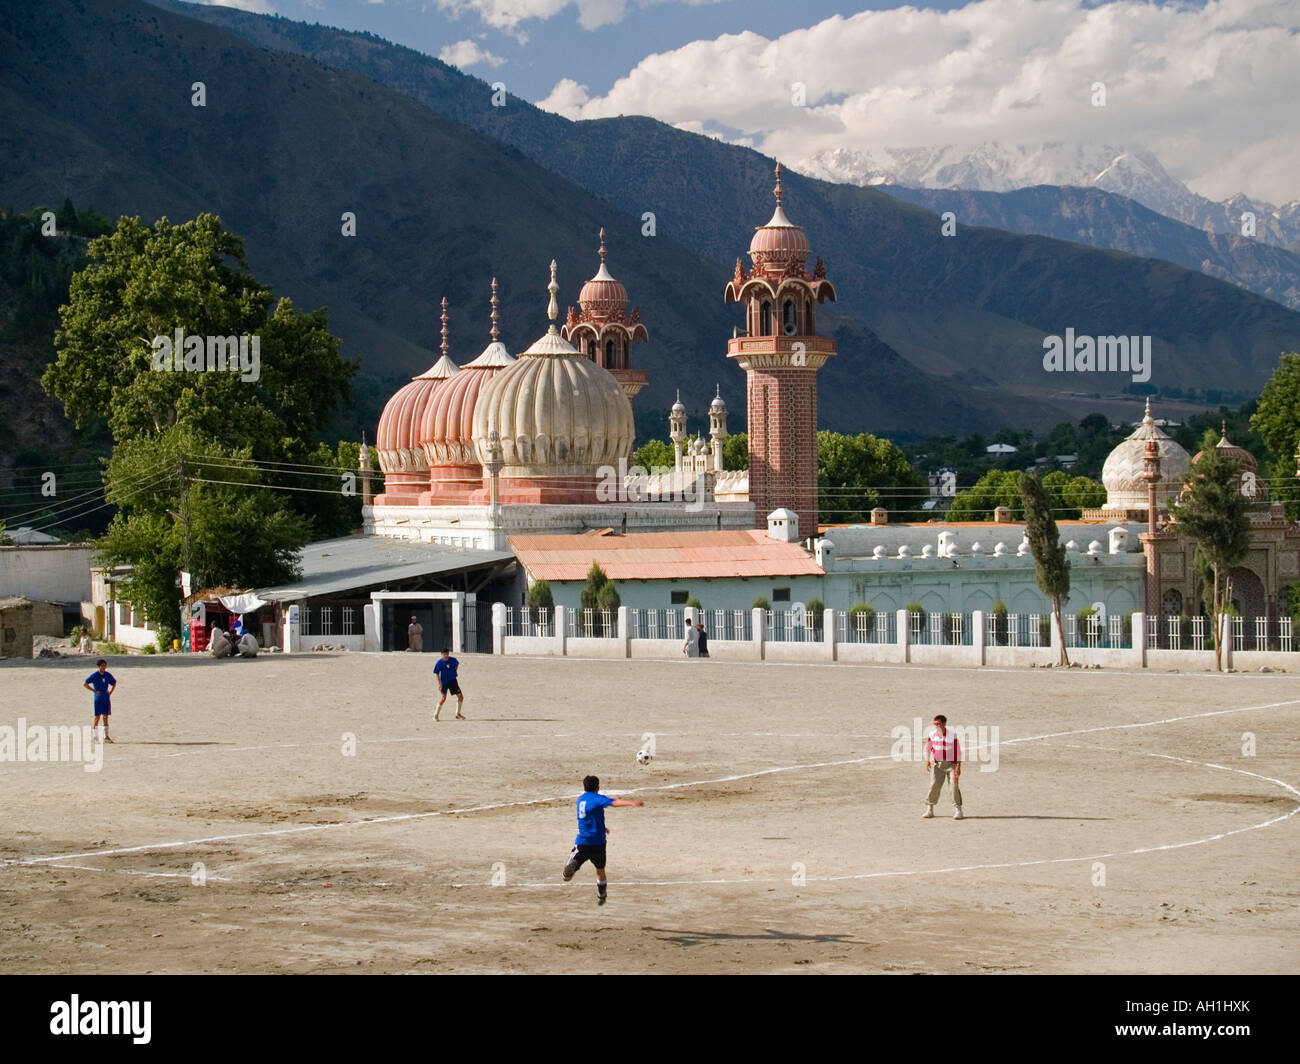 soccer game in front of the magical domes of the Shahi Mosque Chitral Pakistan with Trich Mir peak in the Hindu - Stock Image